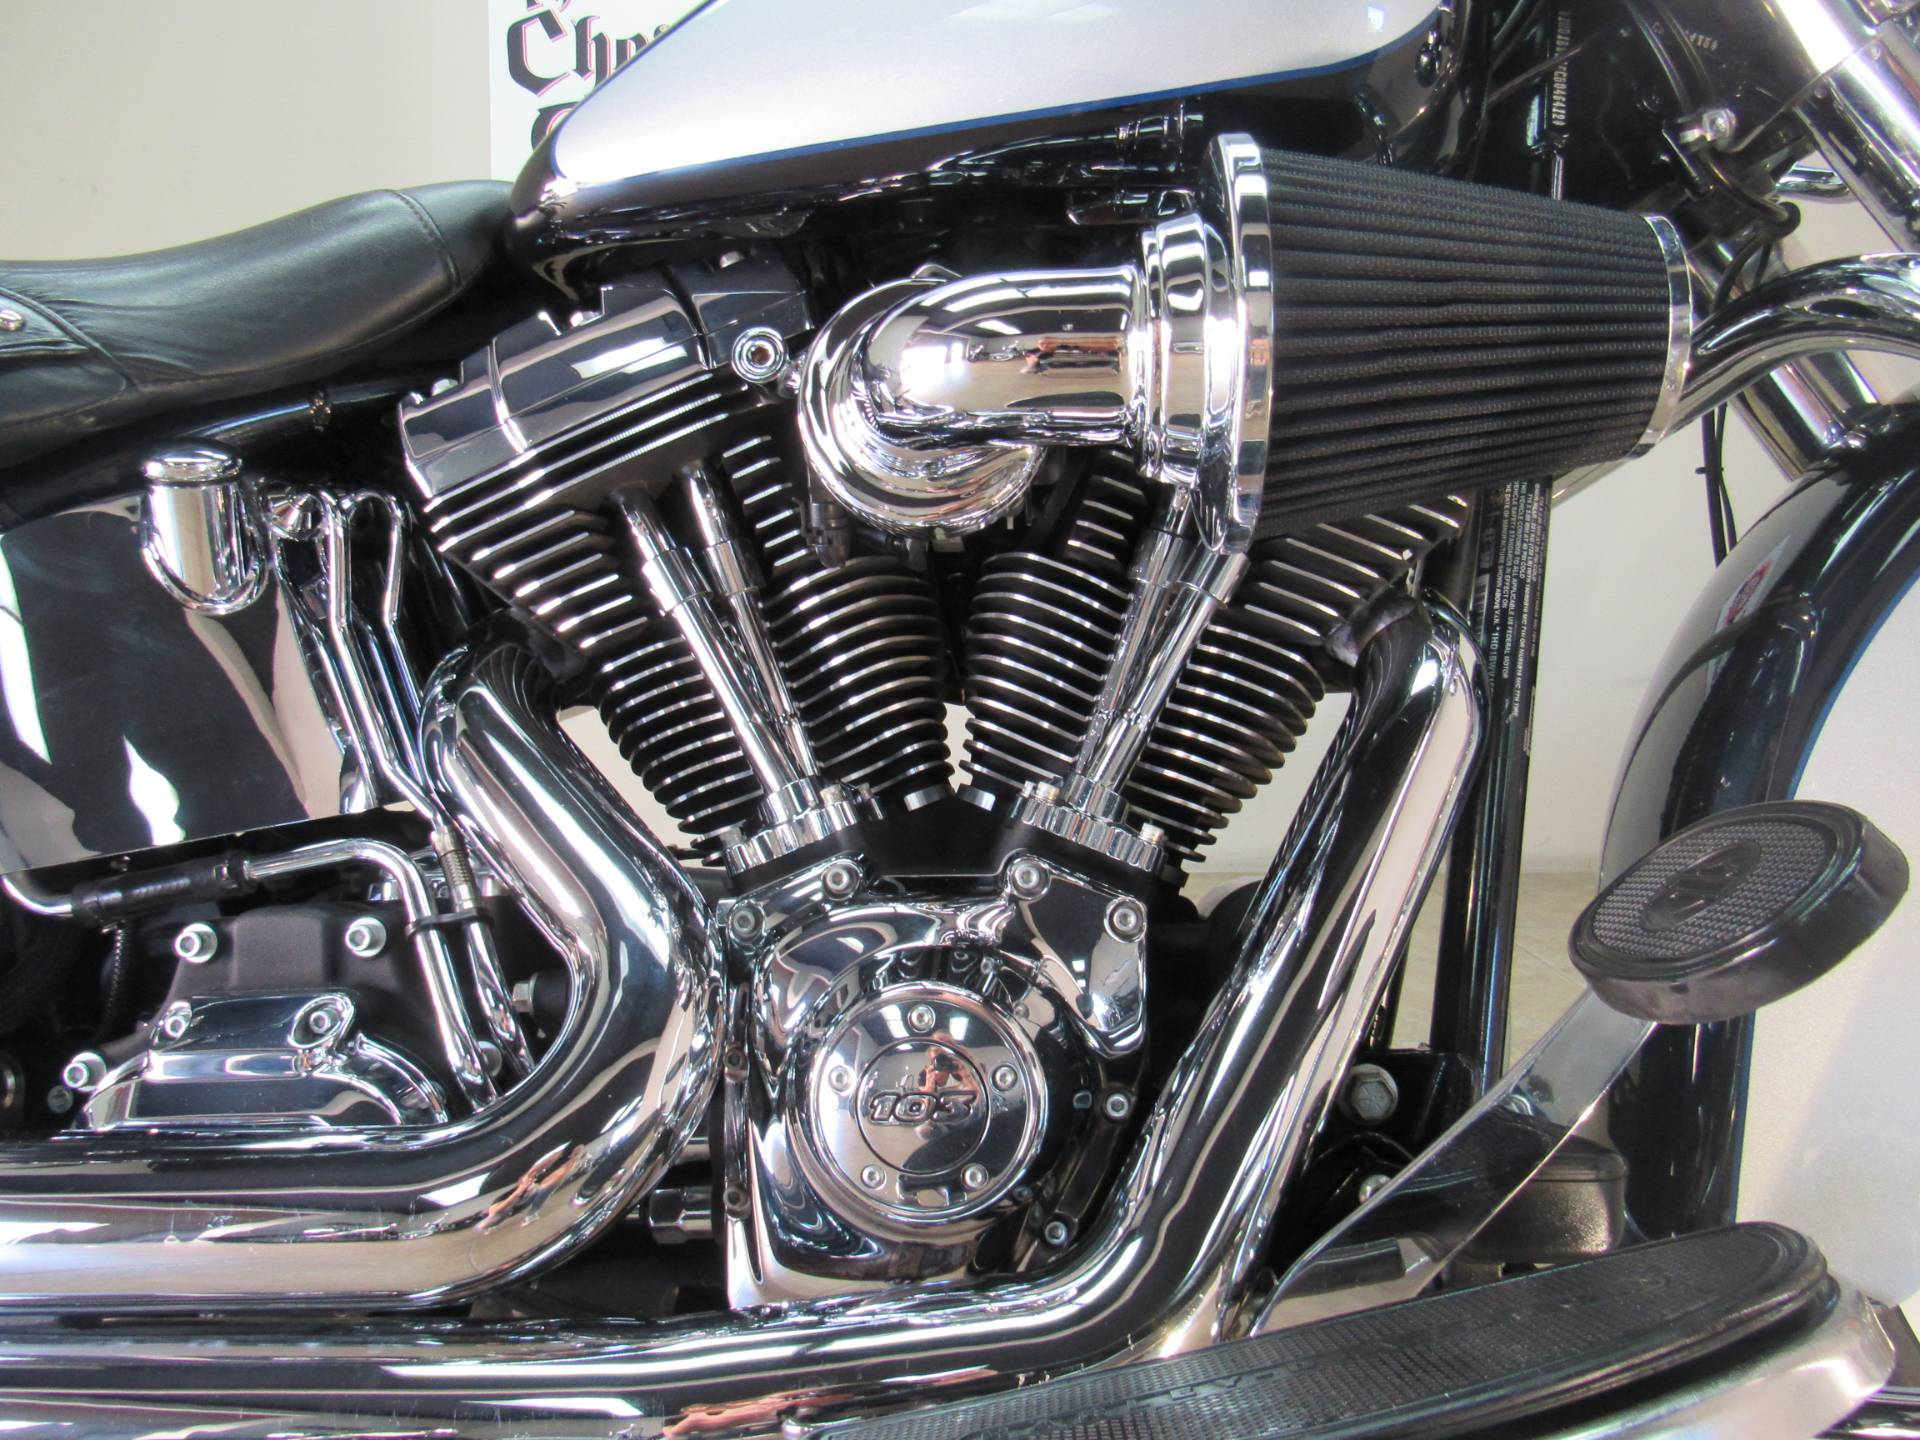 2012 Harley-Davidson Heritage Softail® Classic in Temecula, California - Photo 12